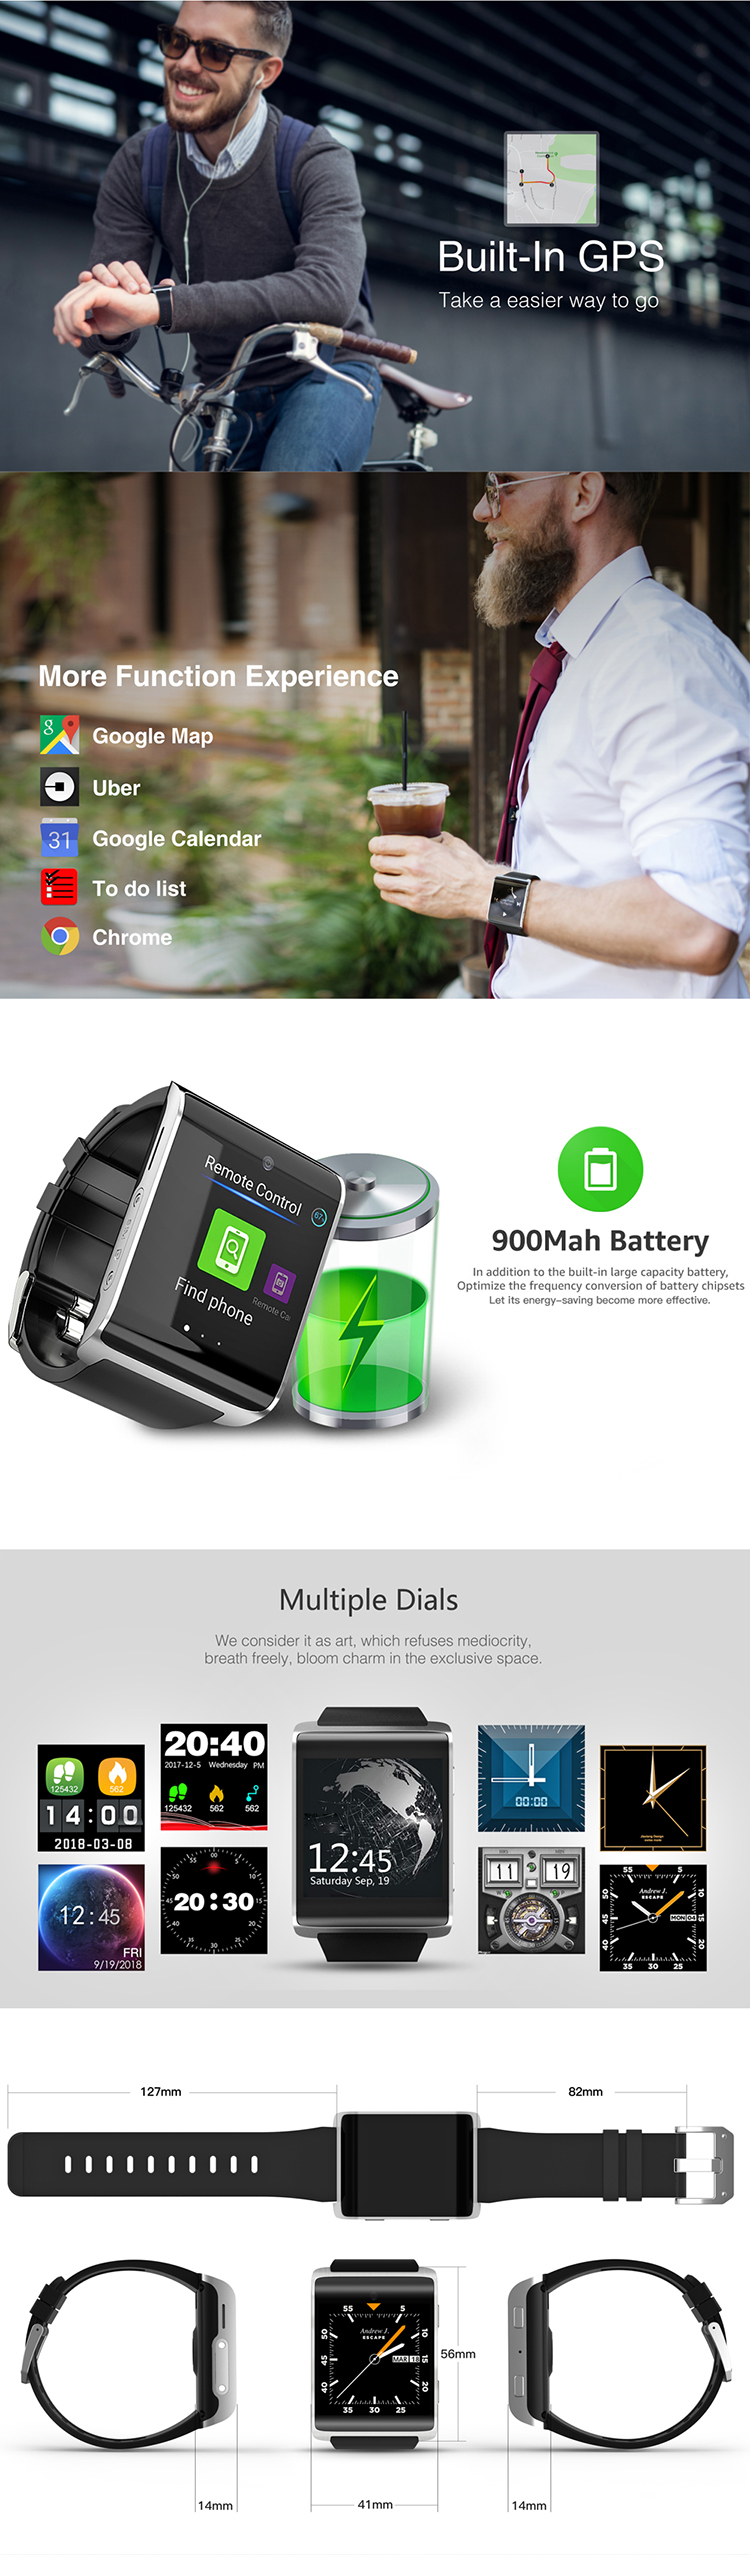 DM2018 Smart Watch 1.54 inch IPS MT6737M Quad Core 1+16G WIFI GPS Android 6.0 Sim card 4G Smart Phone Watch